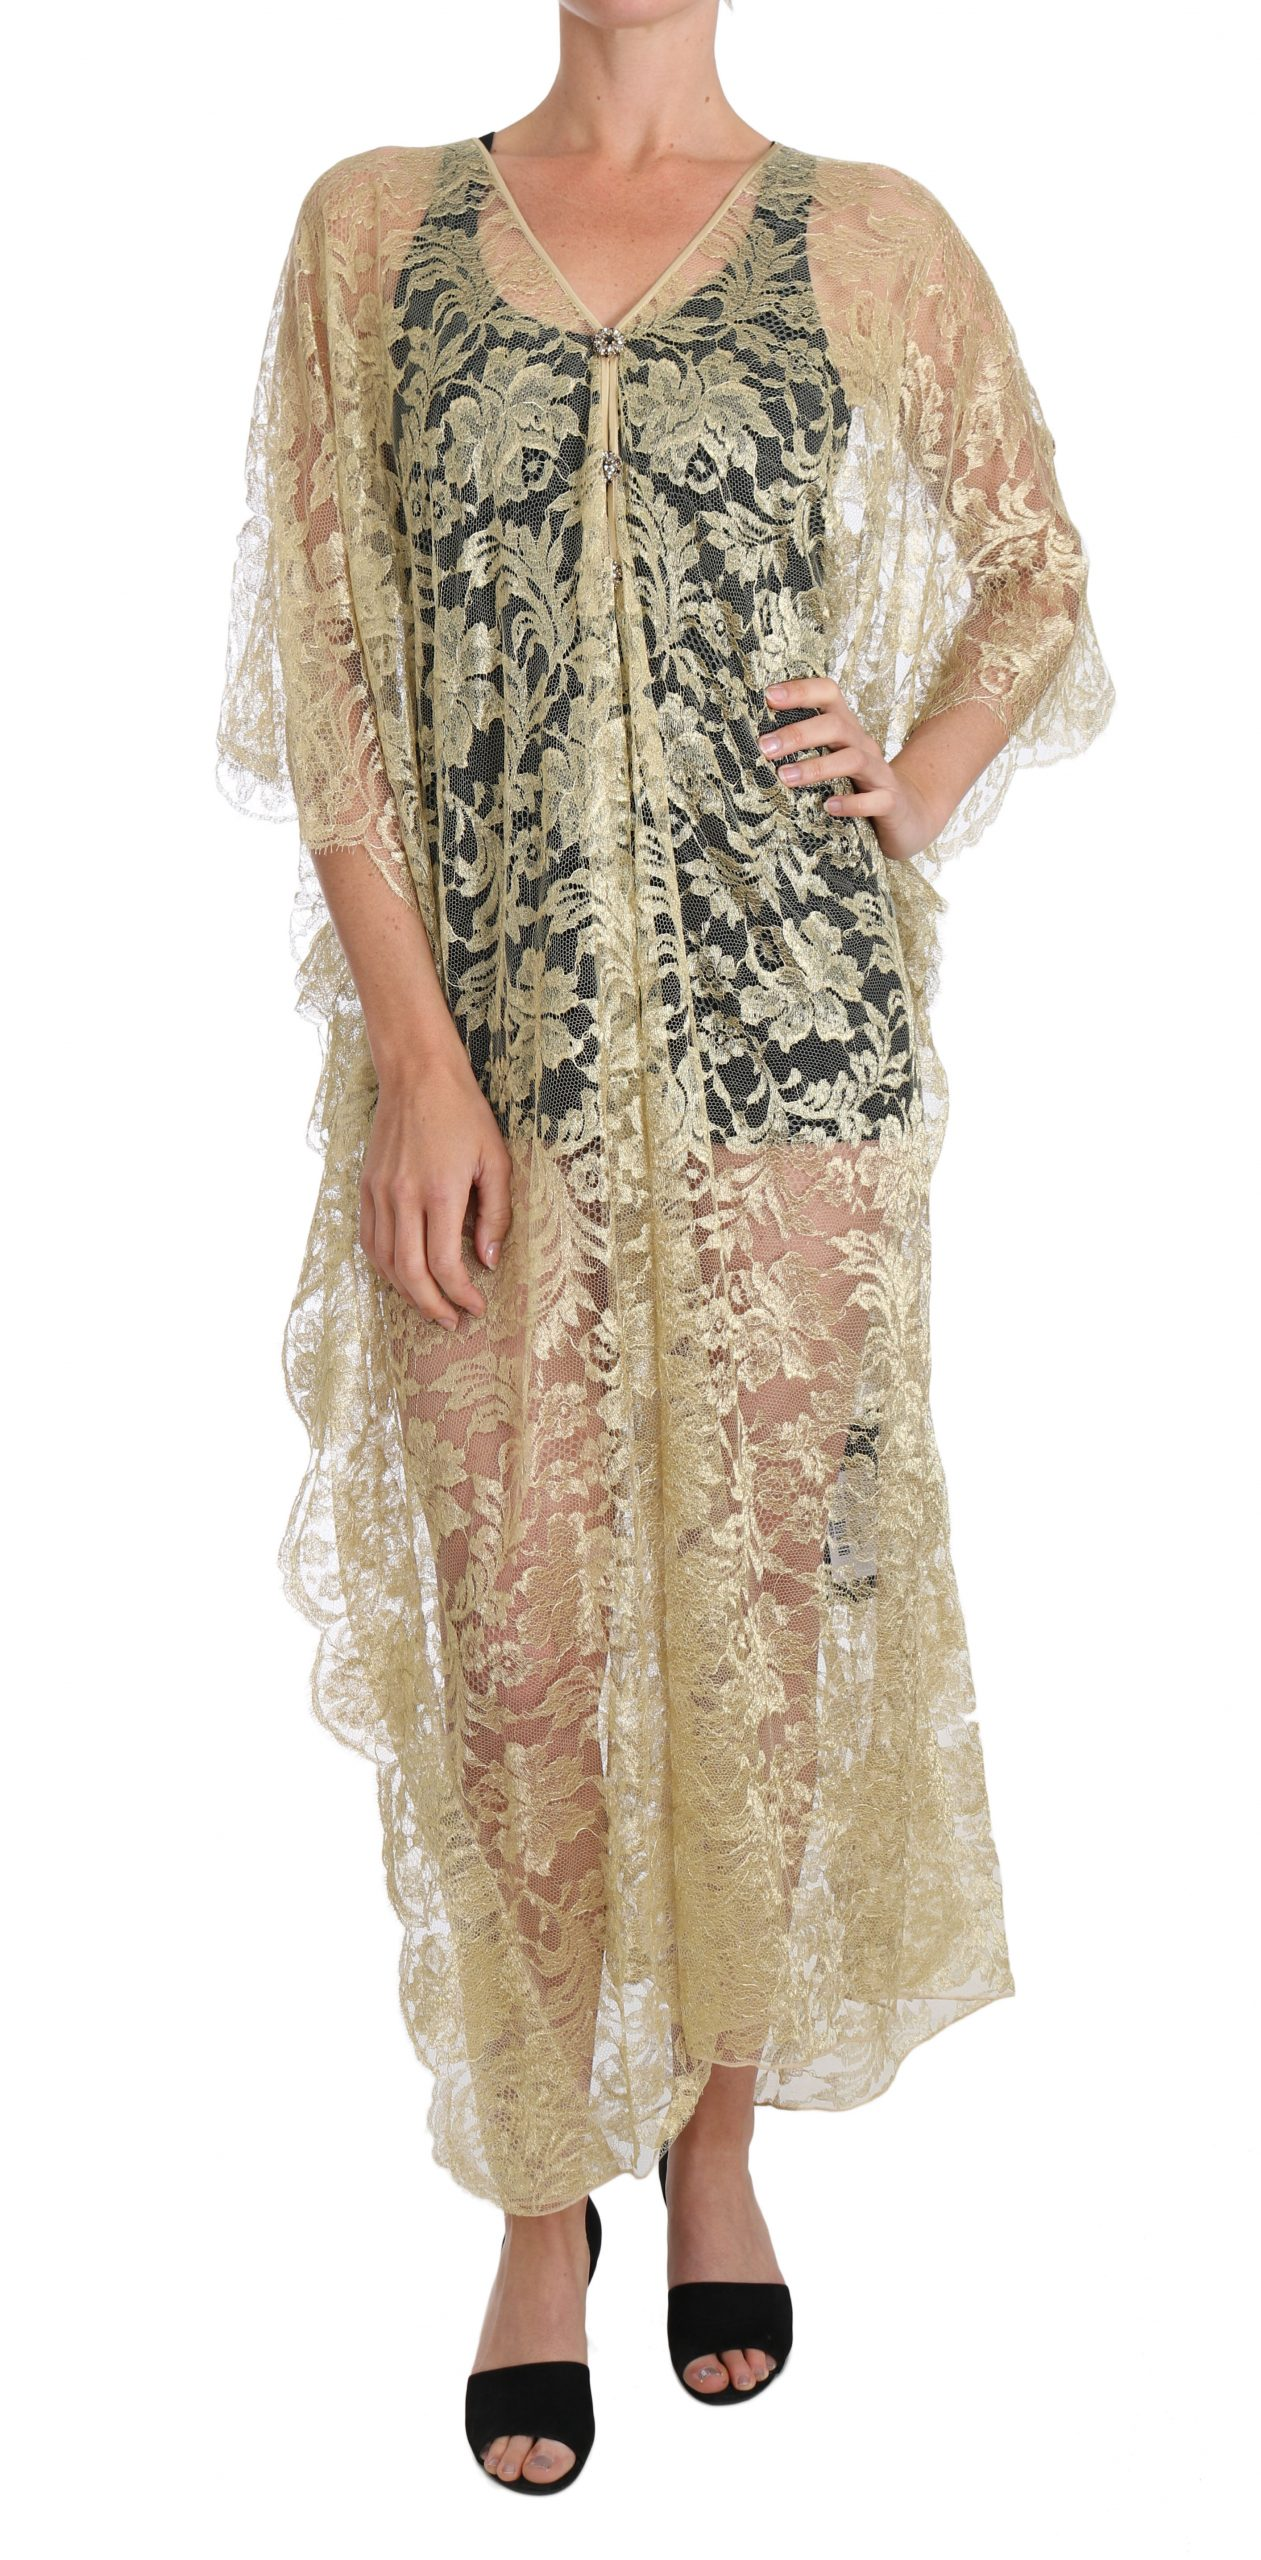 Dolce & Gabbana Women's Floral Lace Crystal Gown Cape Dress Gold DR1524 - IT36   XS